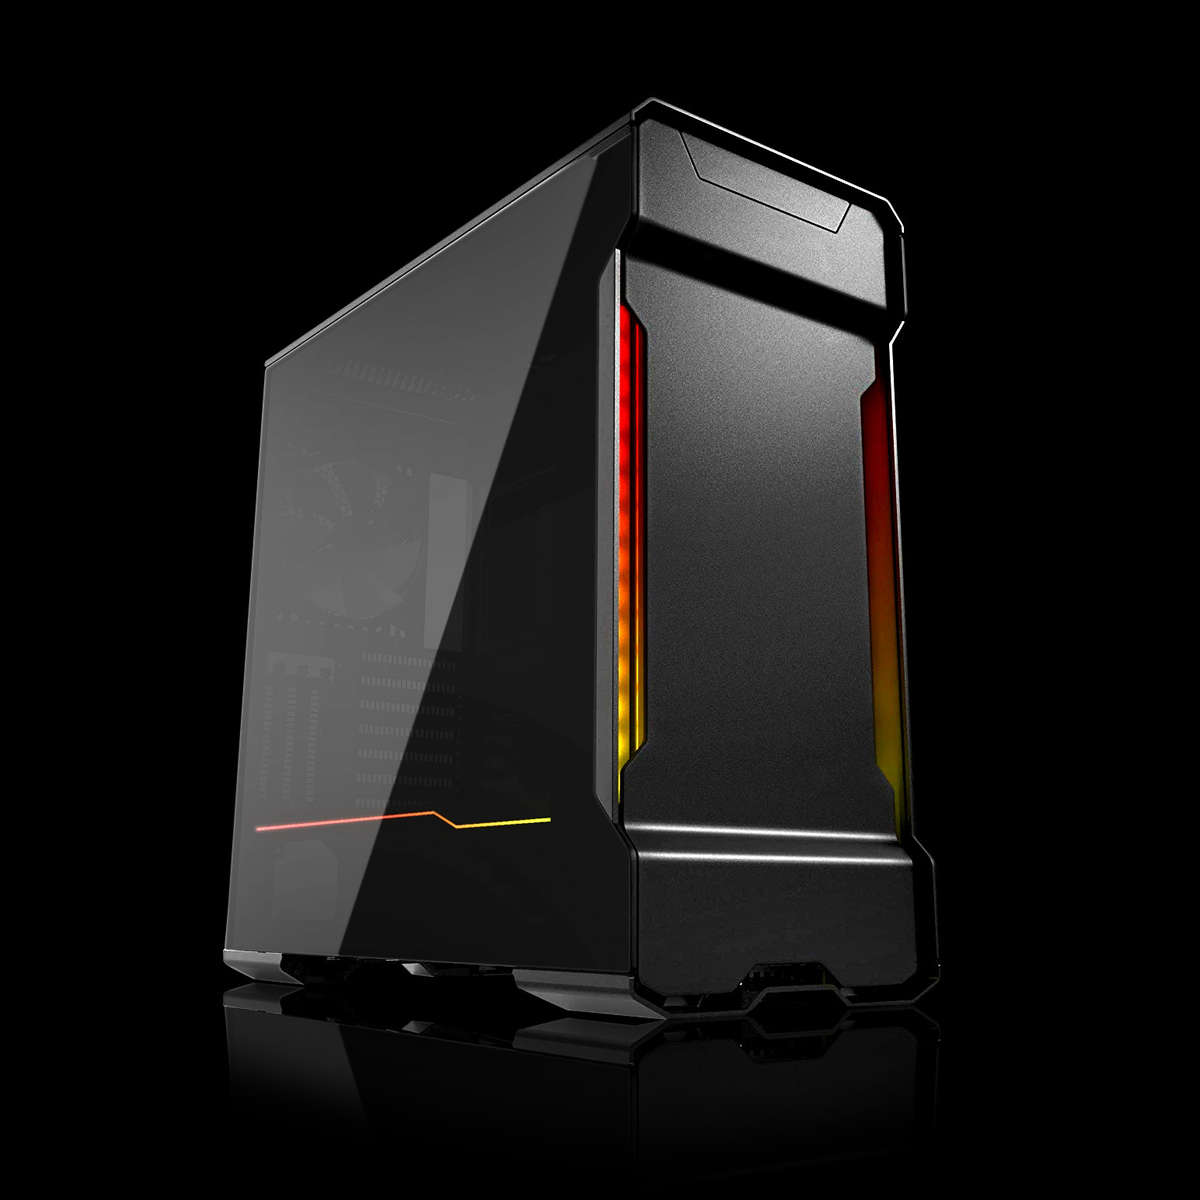 Image of the Chillblast Fusion Ryzen 7 3700X gaming PC